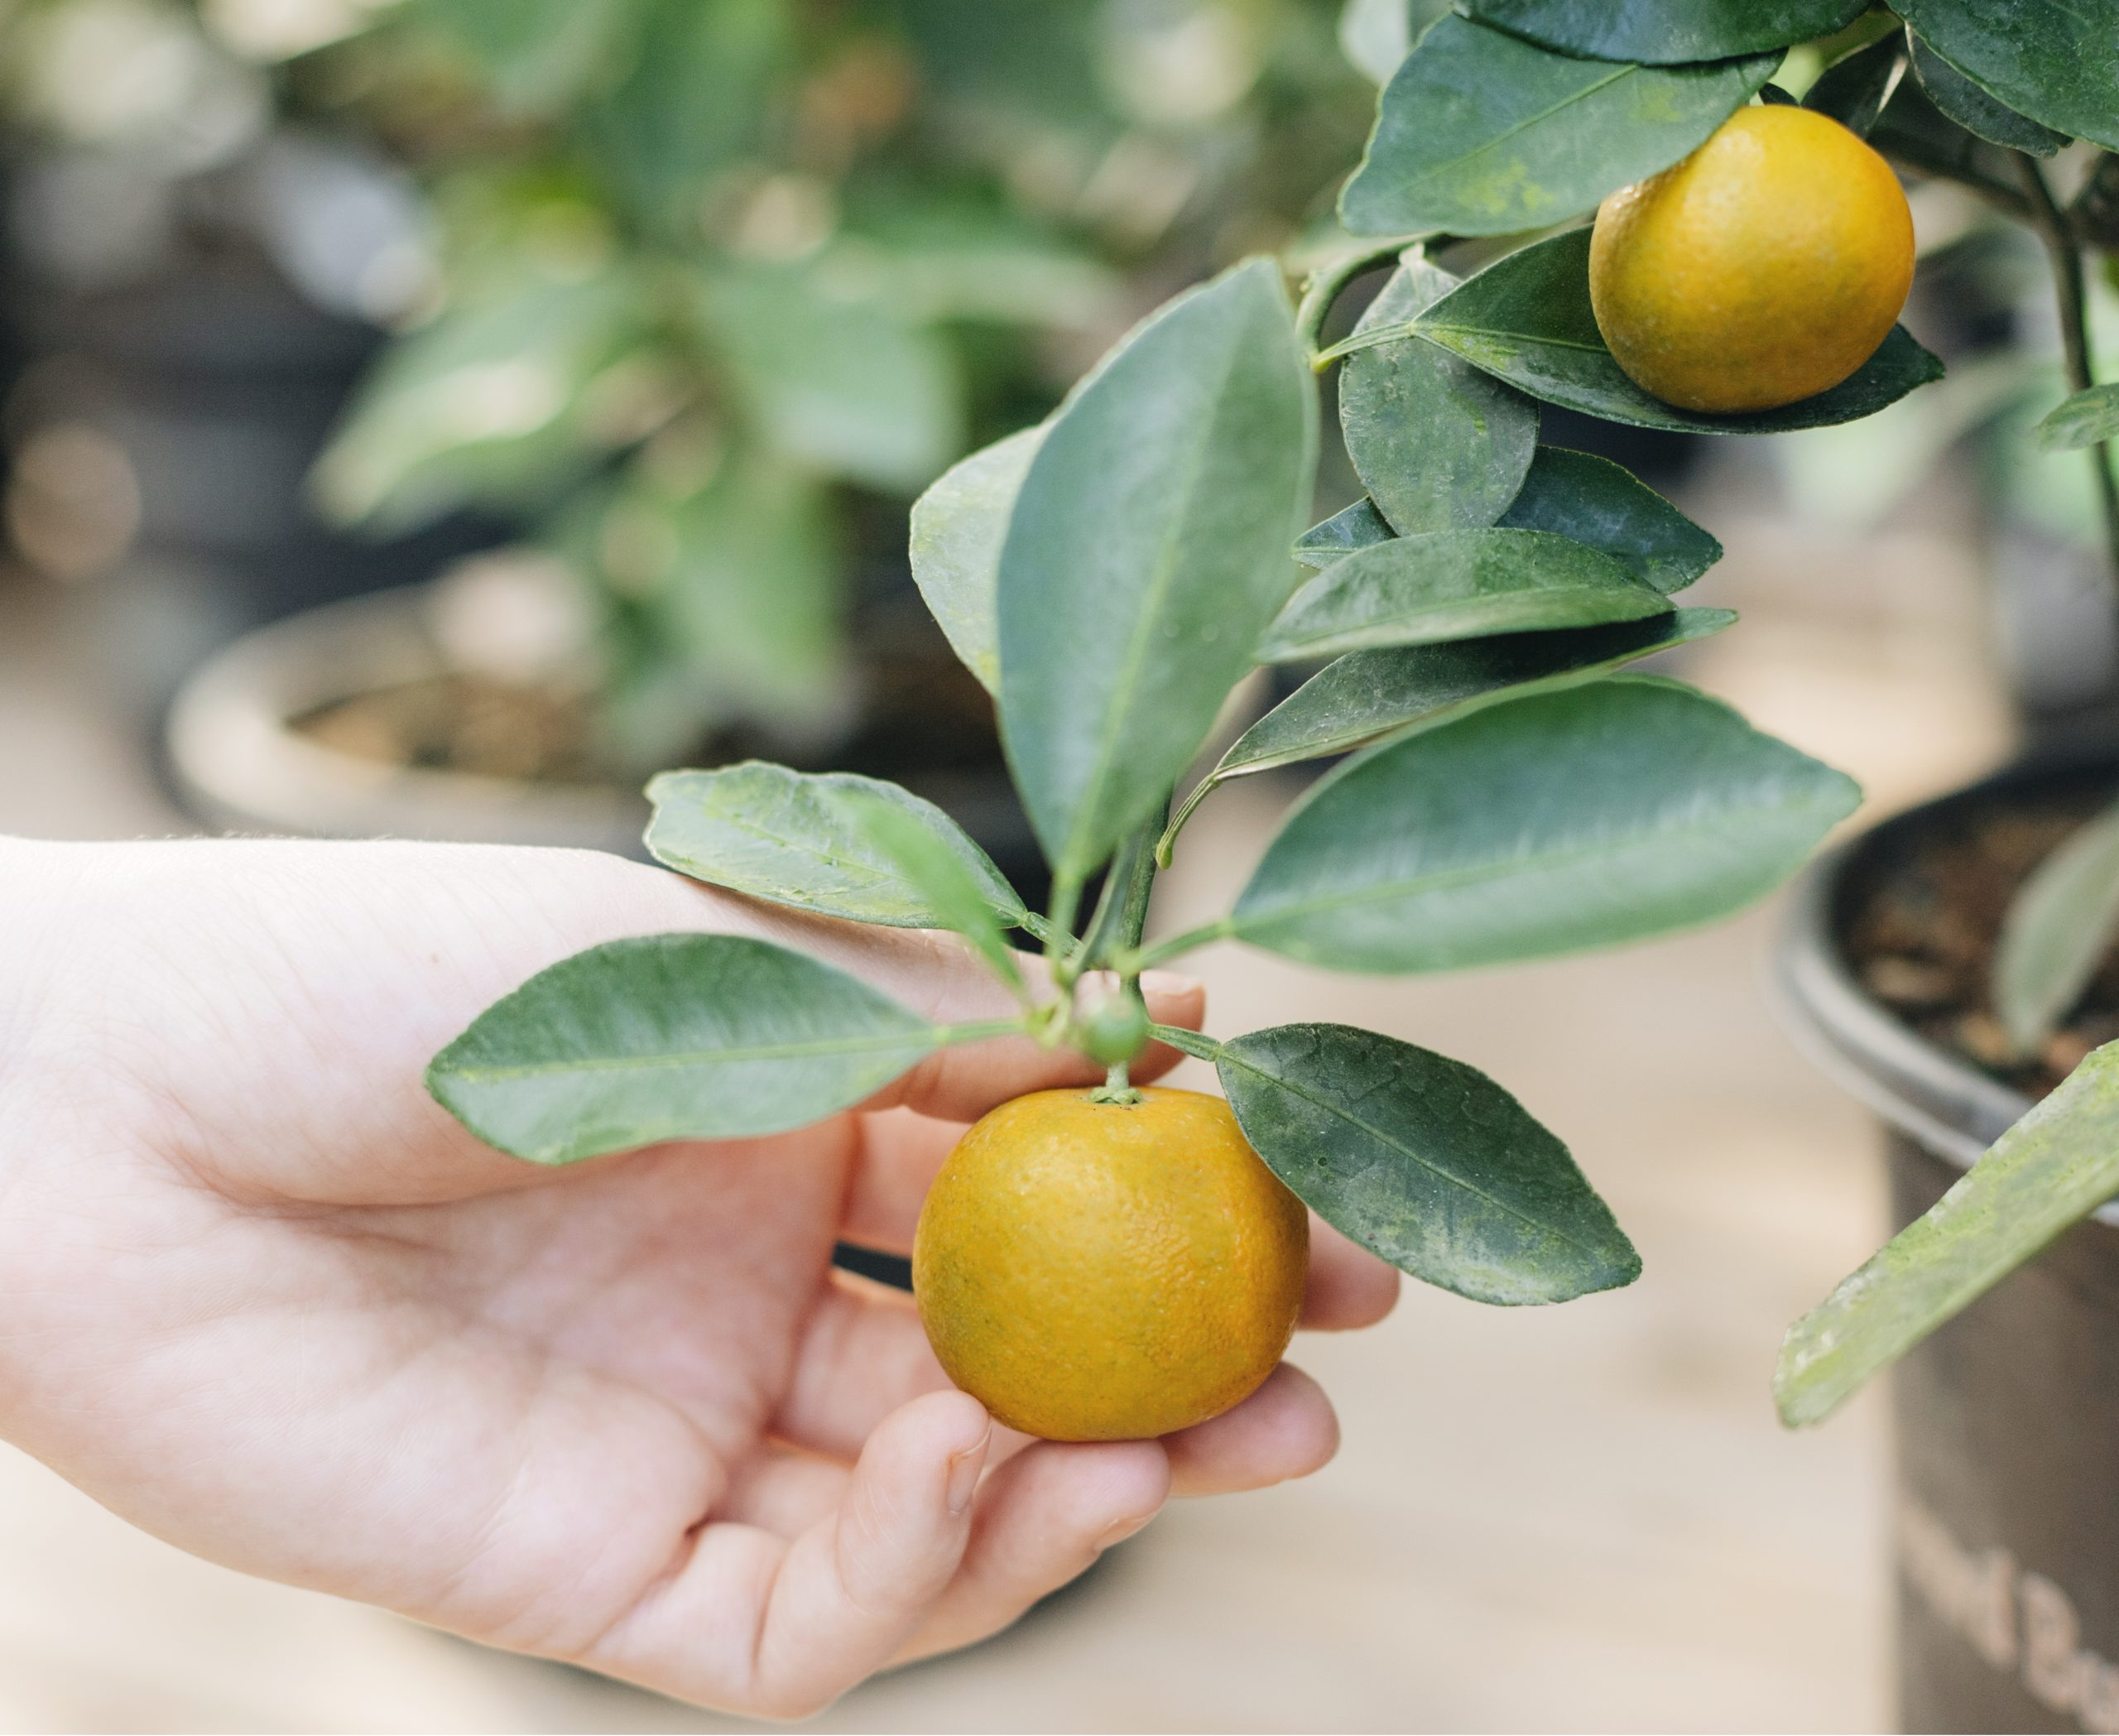 GROW: SQUEEZE IN SOME CITRUS